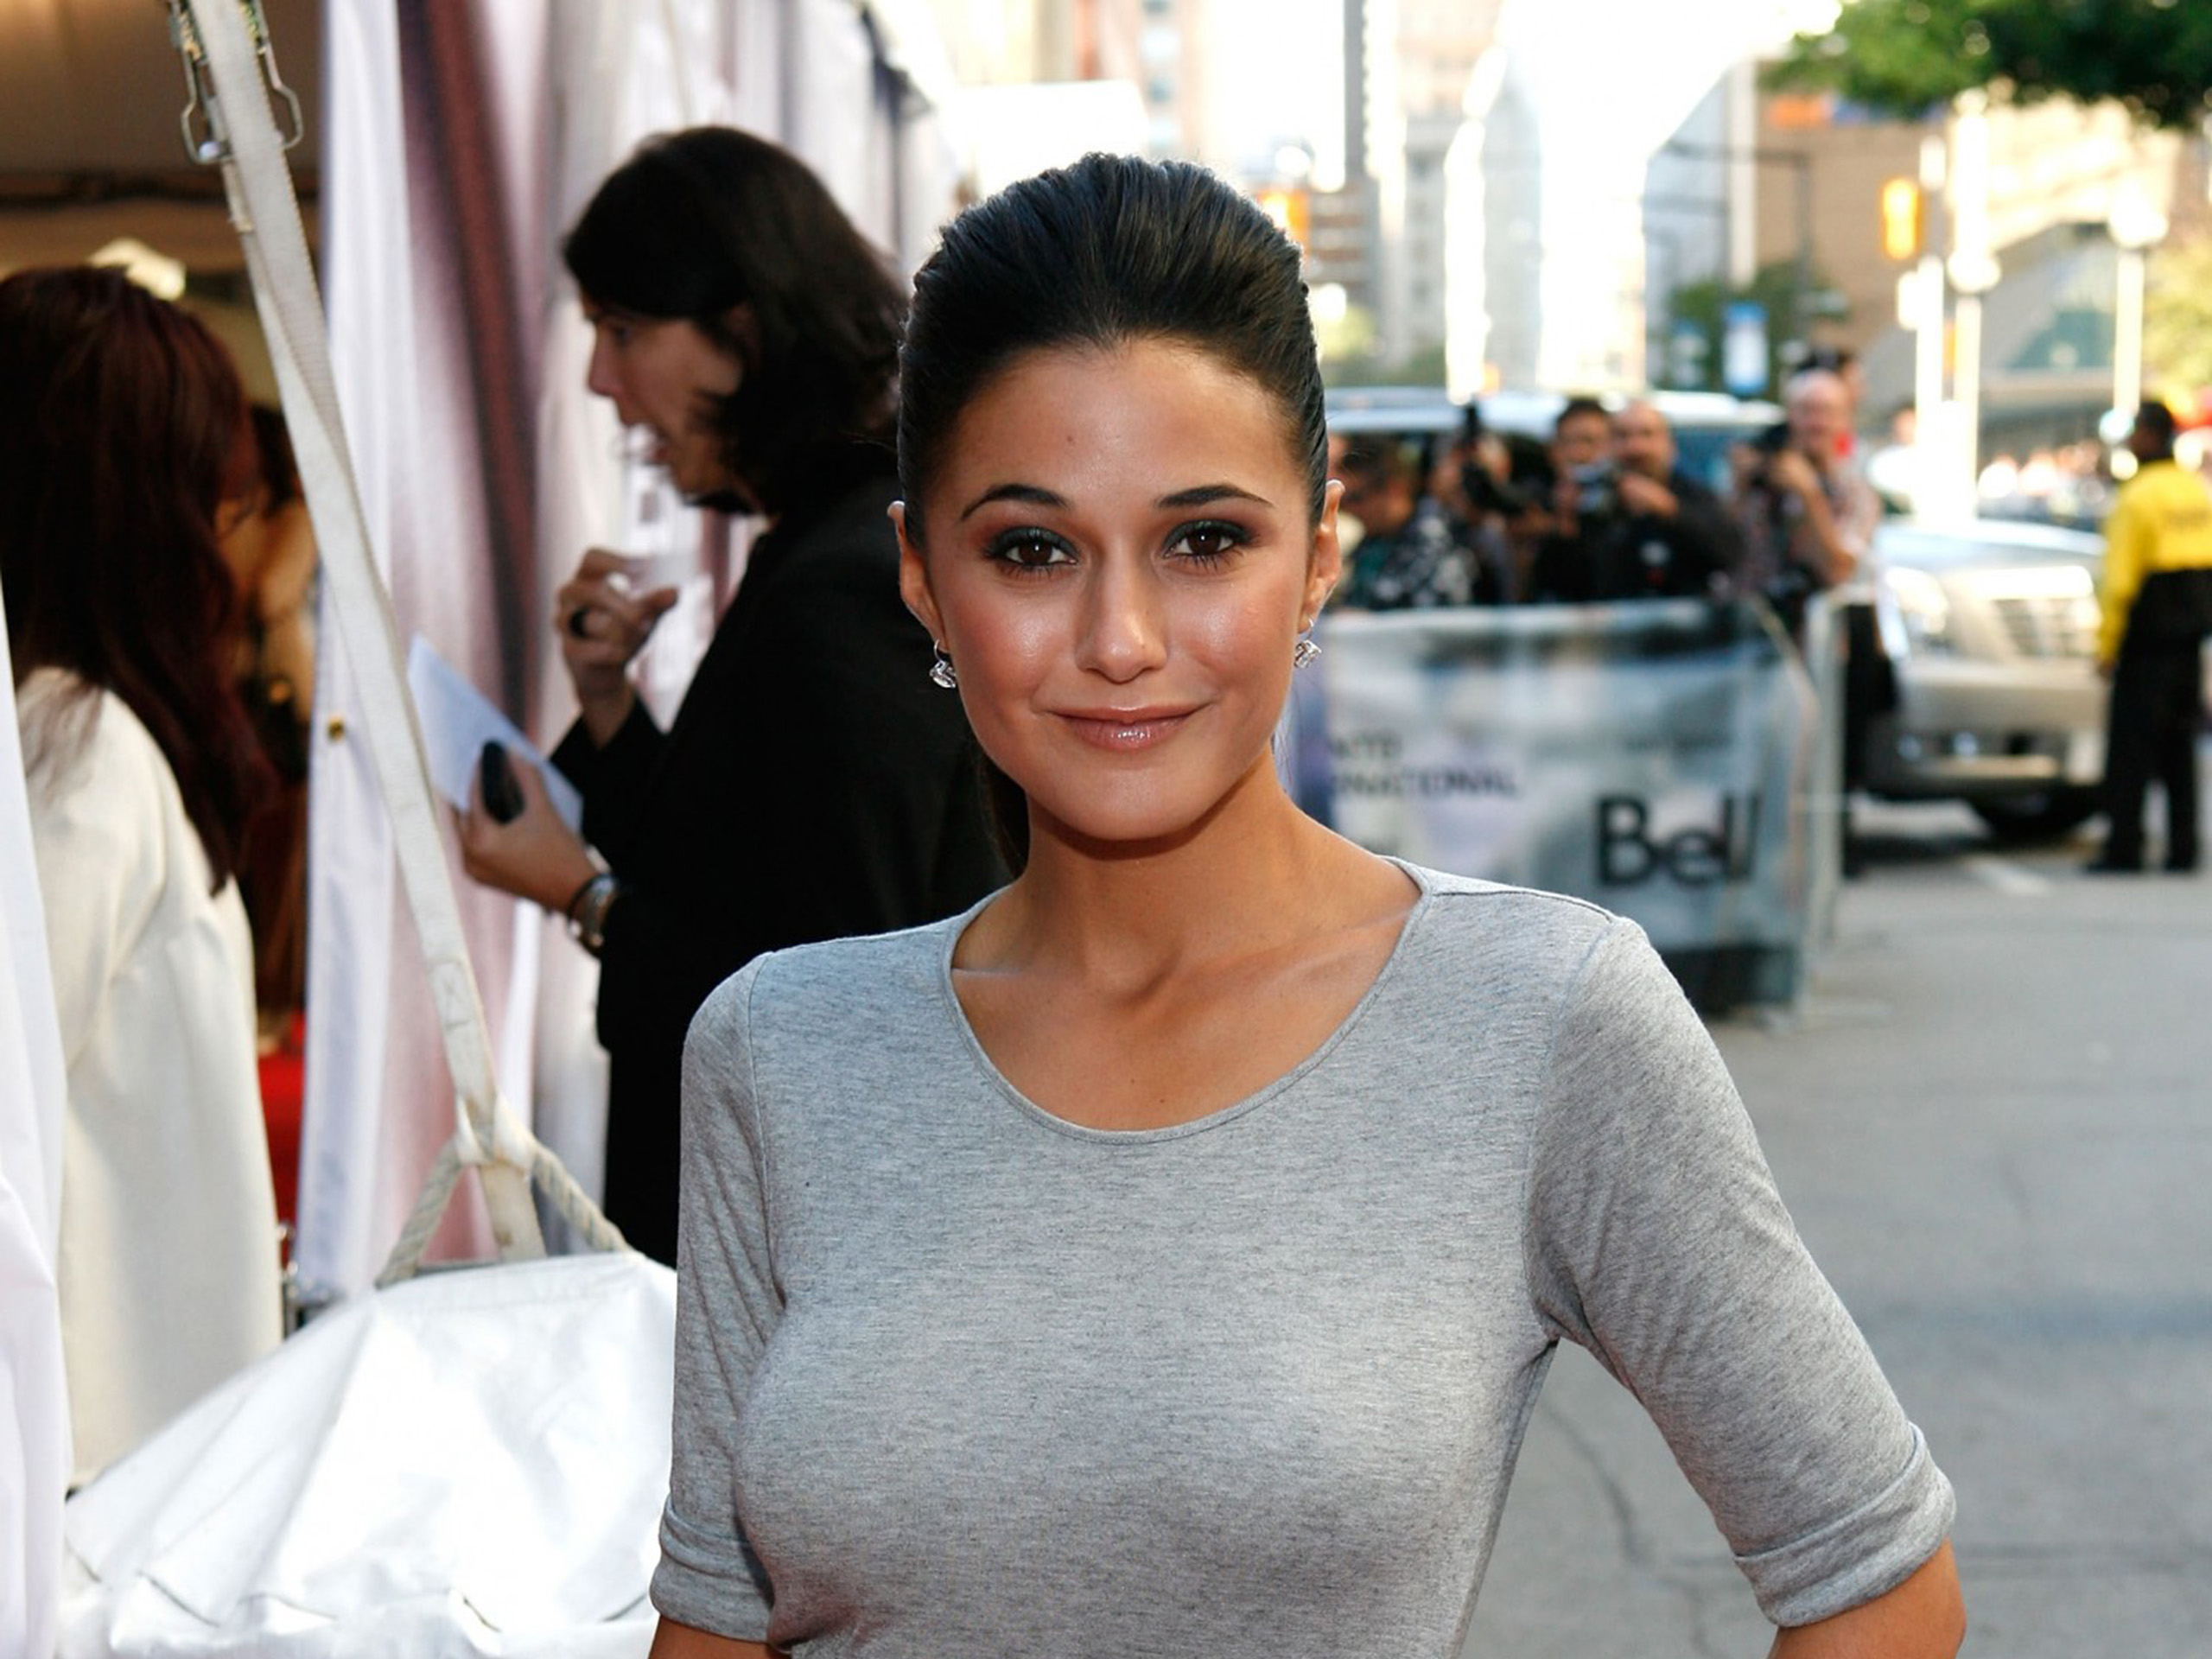 http://www.thewallpapers.org/photo/29173/emmanuelle-chriqui-038.jpg